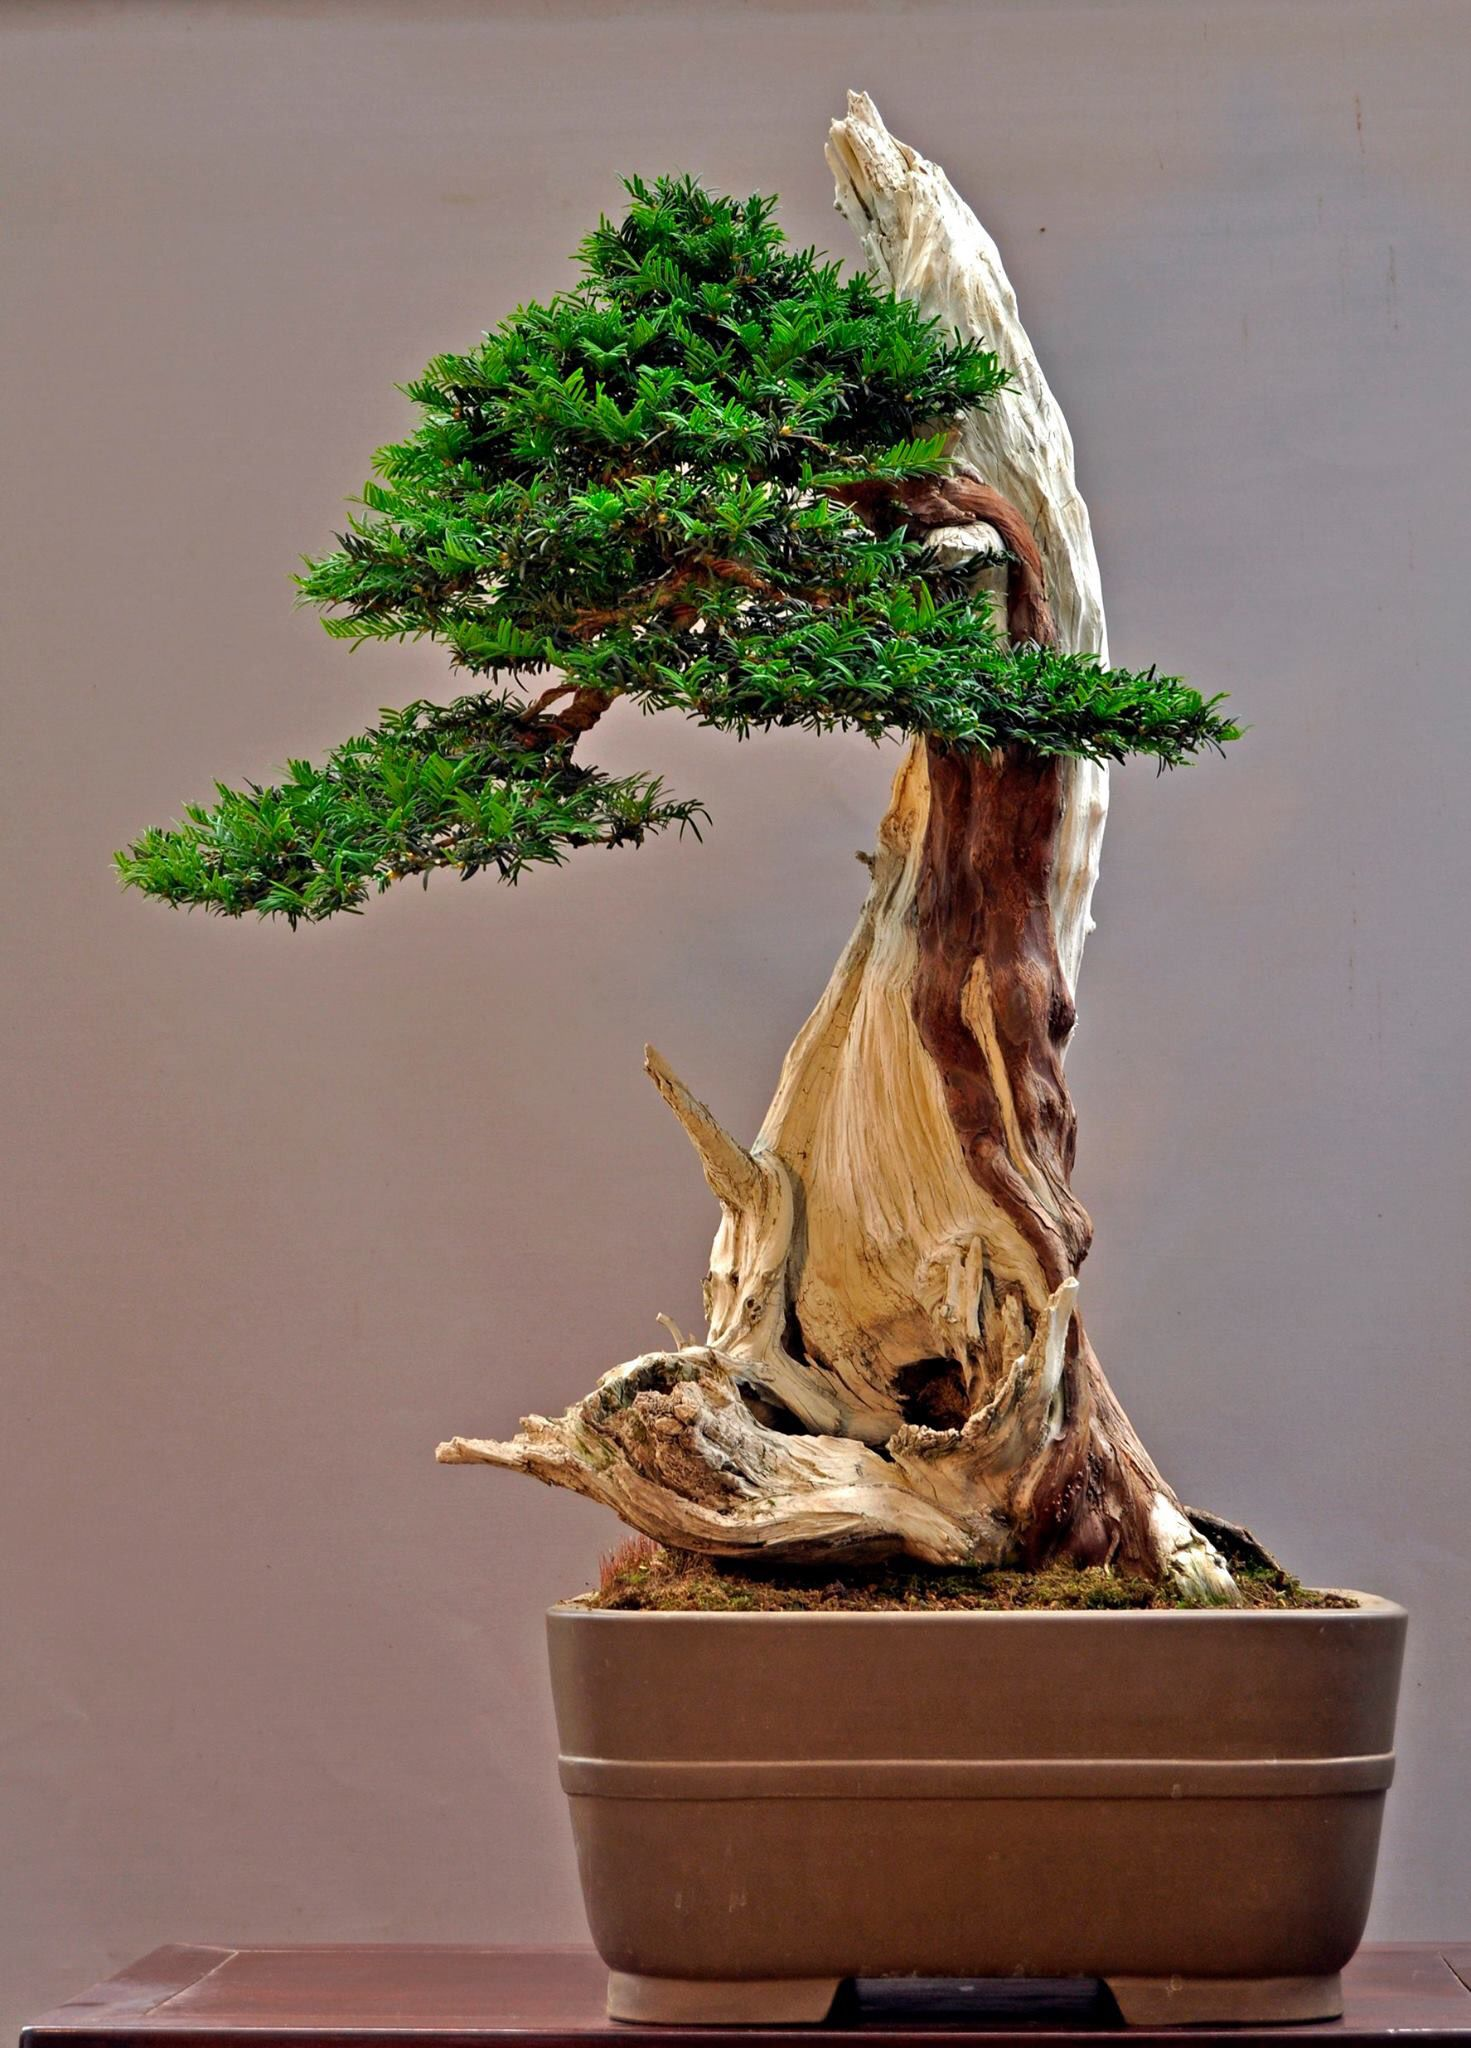 Pin By Chris D Costello On Smallest Forest Pinterest Bonsai Plants And Ikebana